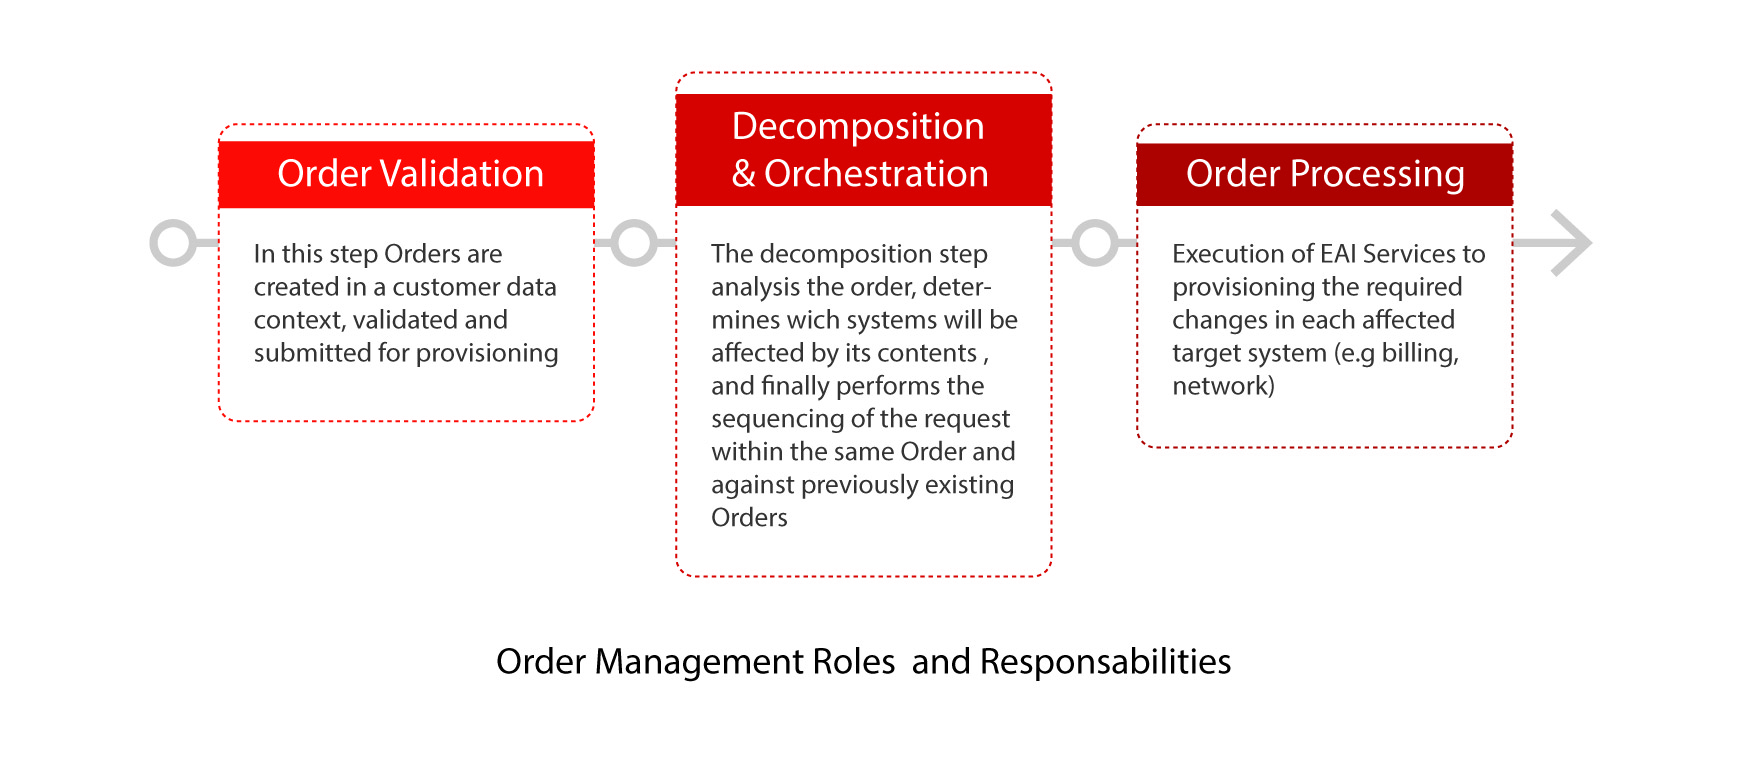 Figure 1 Order Management Roles and Responsibilities